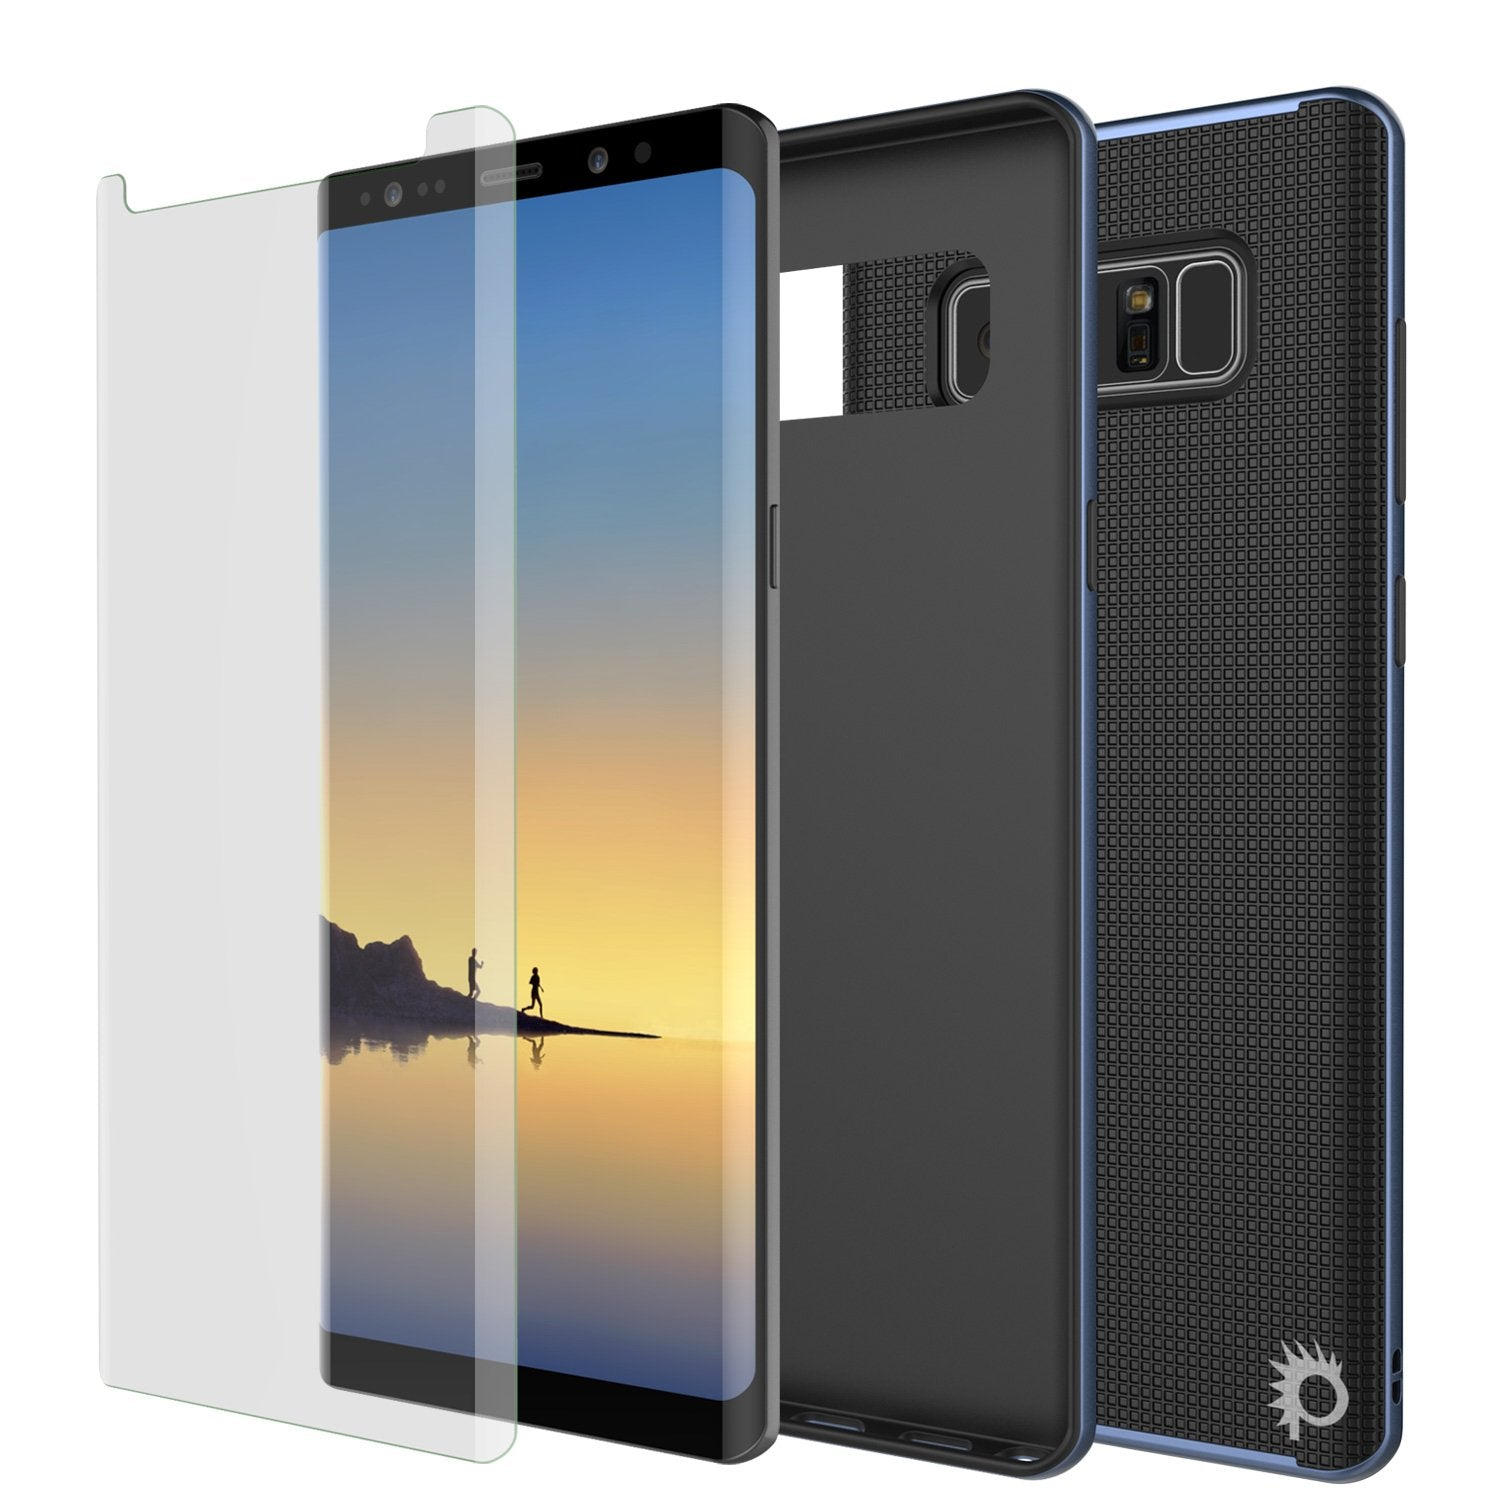 Galaxy Note 8 Case, PunkCase [Stealth Series] Hybrid 3-Piece Shockproof Dual Layer Cover [Non-Slip] [Soft TPU + PC Bumper] with PUNKSHIELD Screen Protector for Samsung Note 8 [Navy Blue] - PunkCase NZ